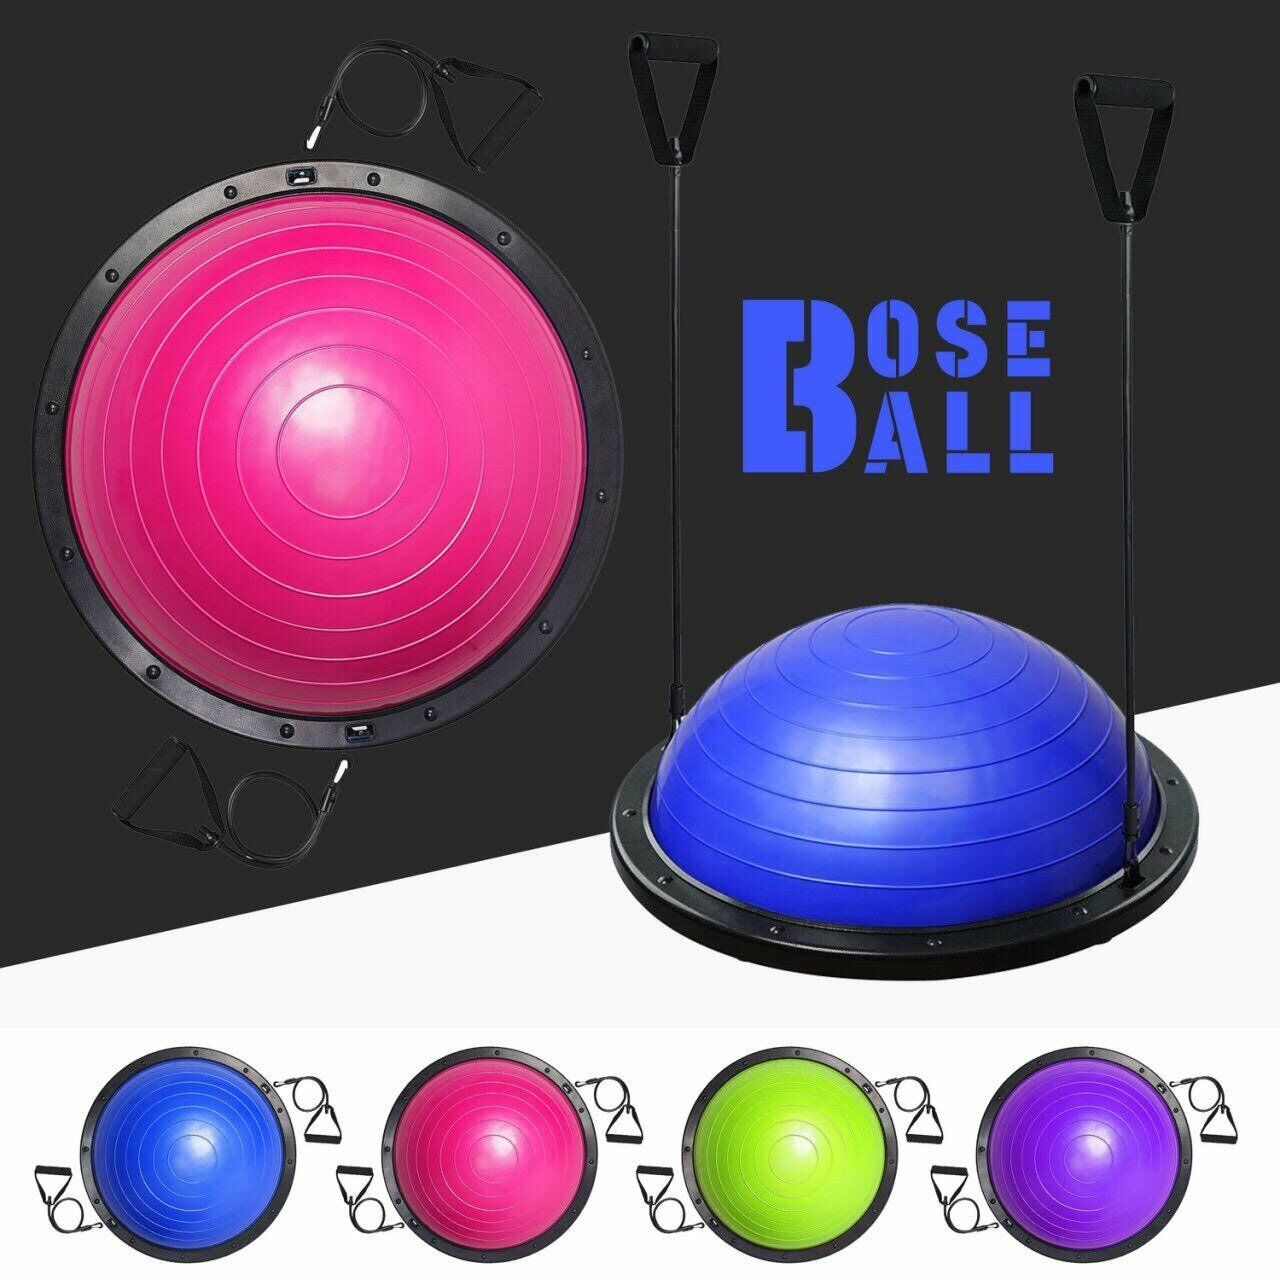 We R Sports Yoga Bose Ball Balance Trainer Stabilizer Pilates Fitness Balancing